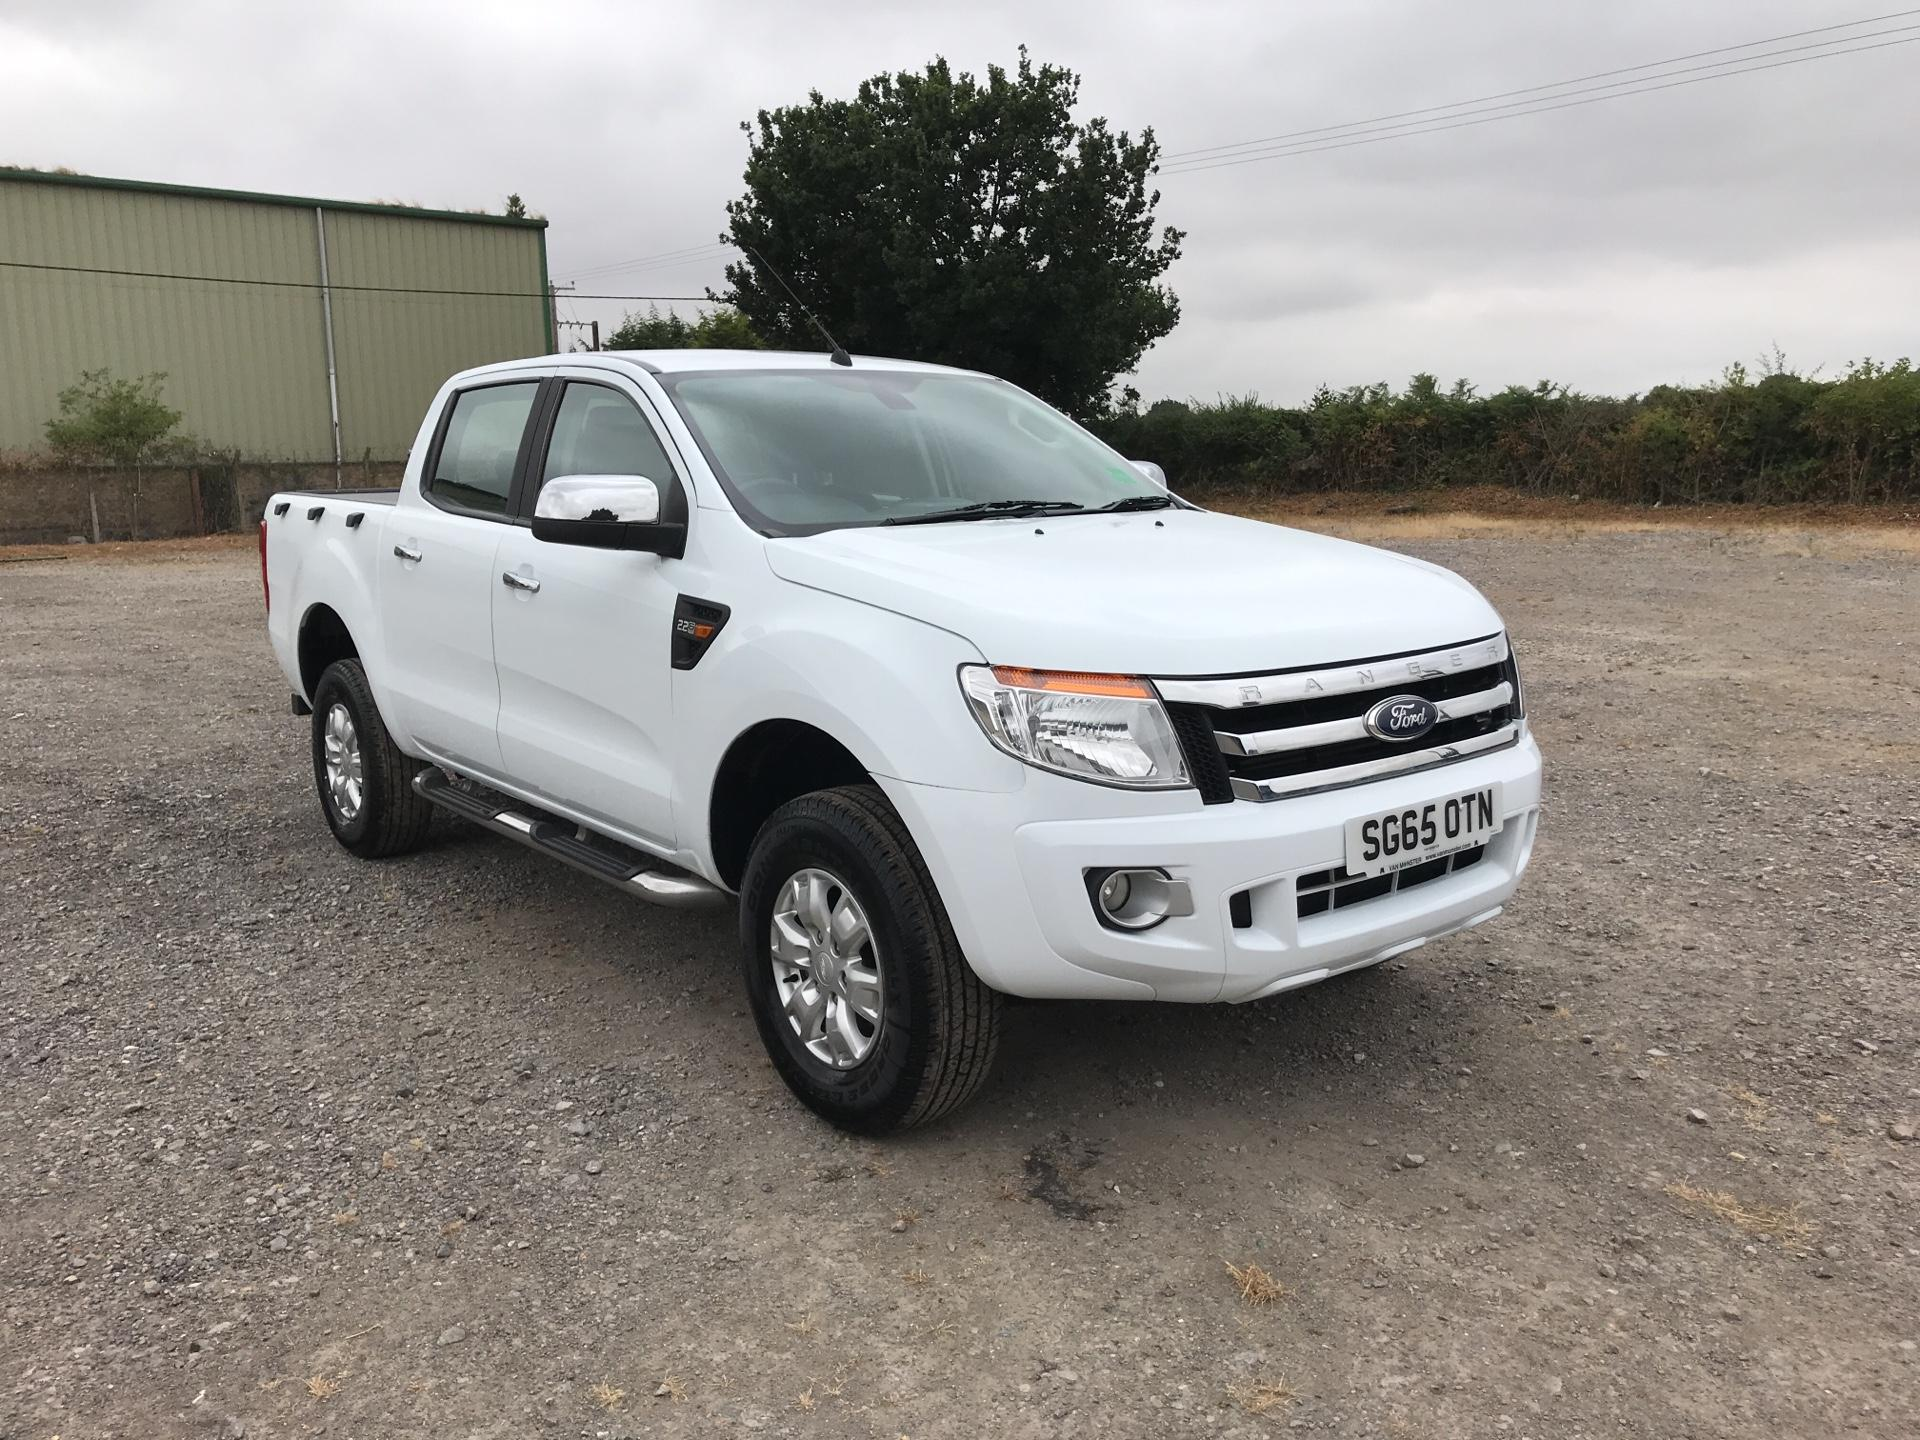 2015 Ford Ranger Pick Up Double Cab Xlt 2.2 Tdci 150 4Wd (SG65OTN)